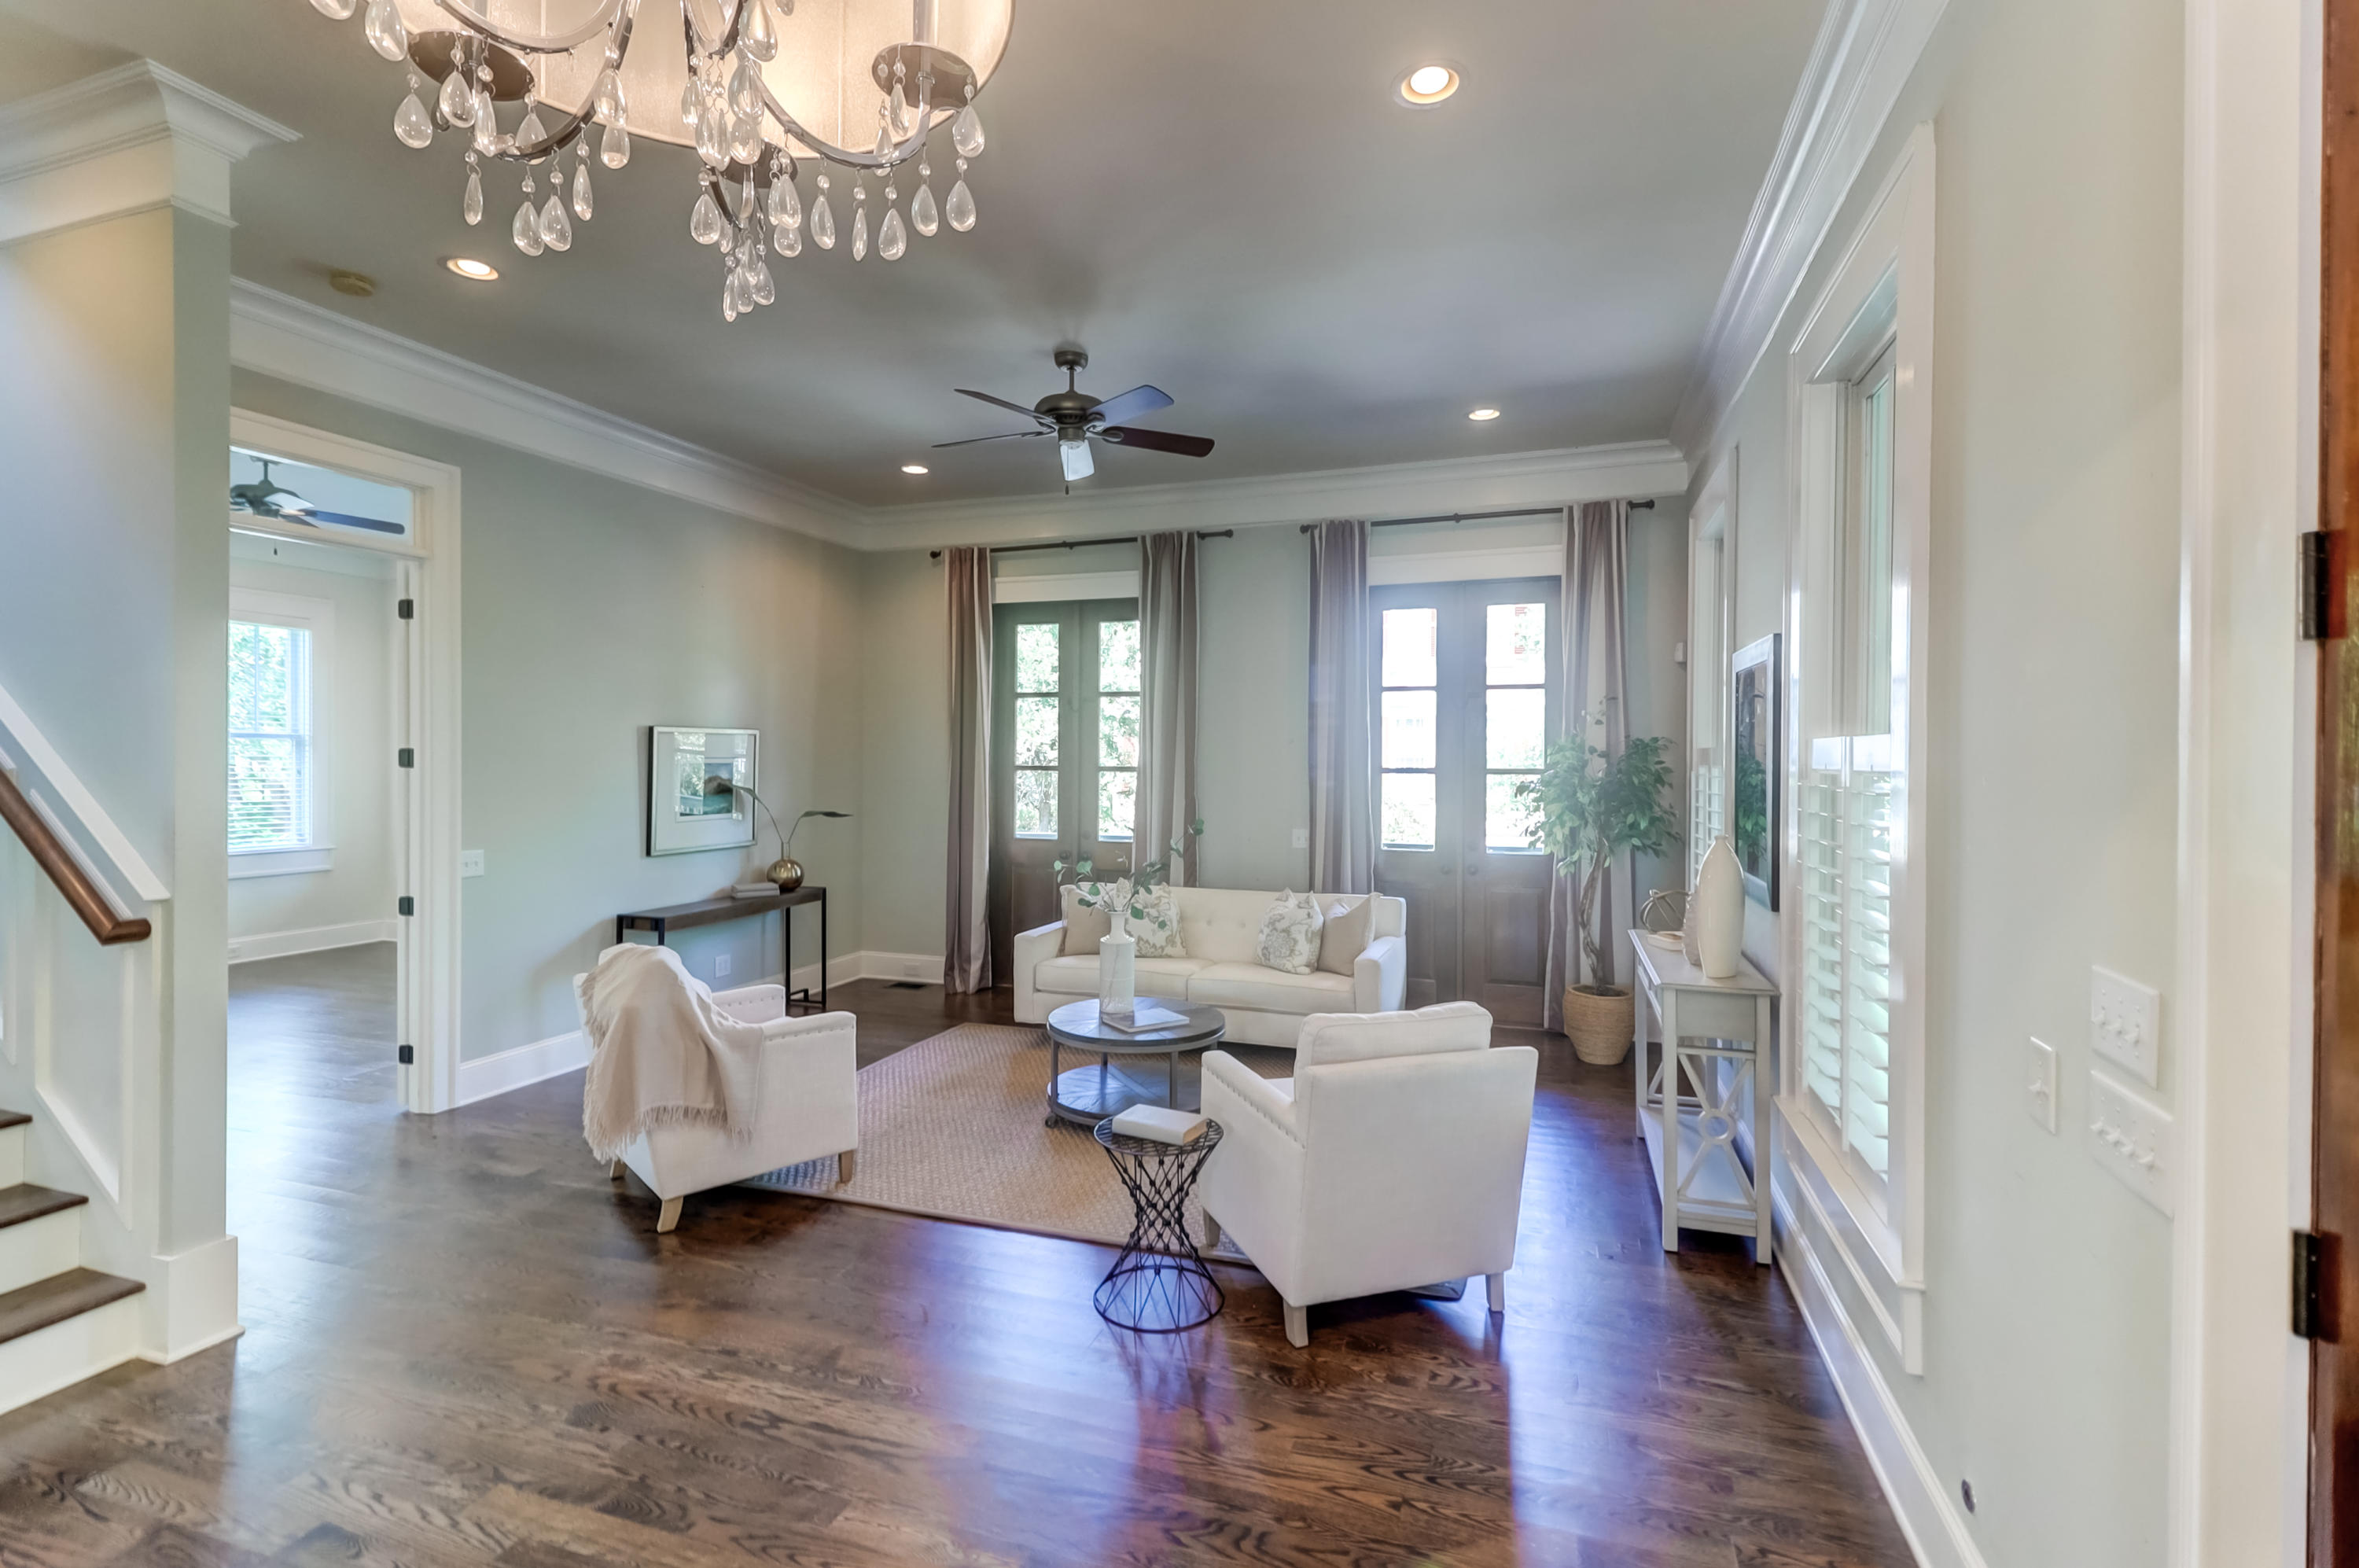 Belle Hall Homes For Sale - 713 Stucco, Mount Pleasant, SC - 43